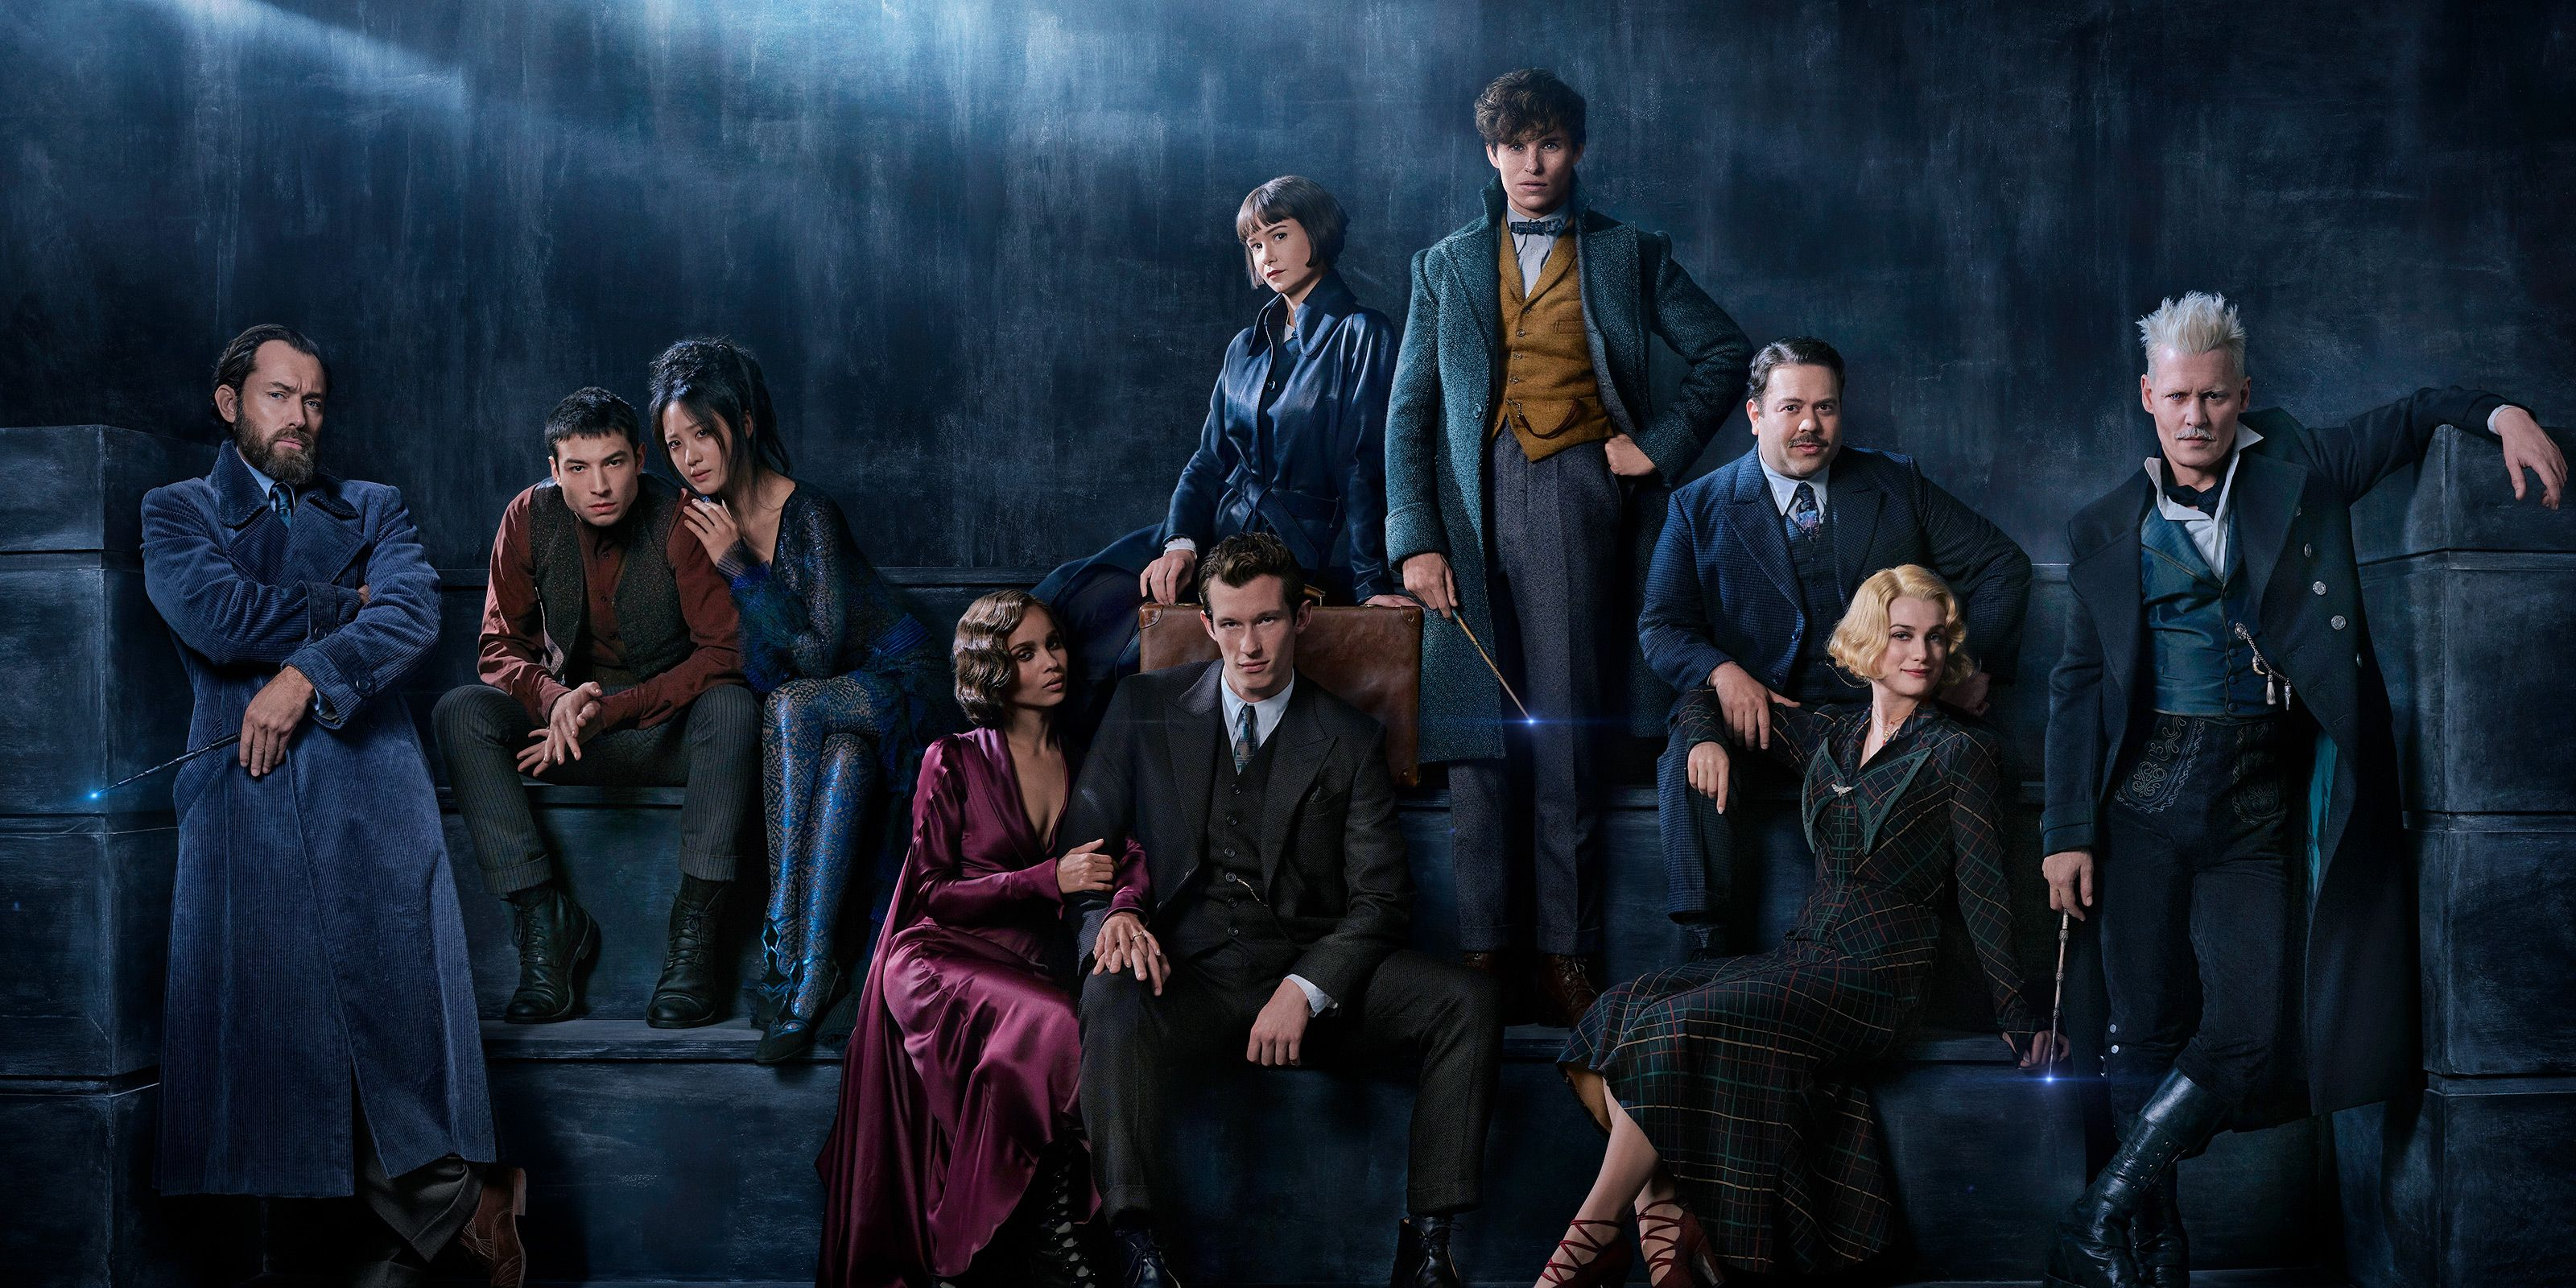 fantastic beasts 2, fantastic beasts the crimes of grindelwald